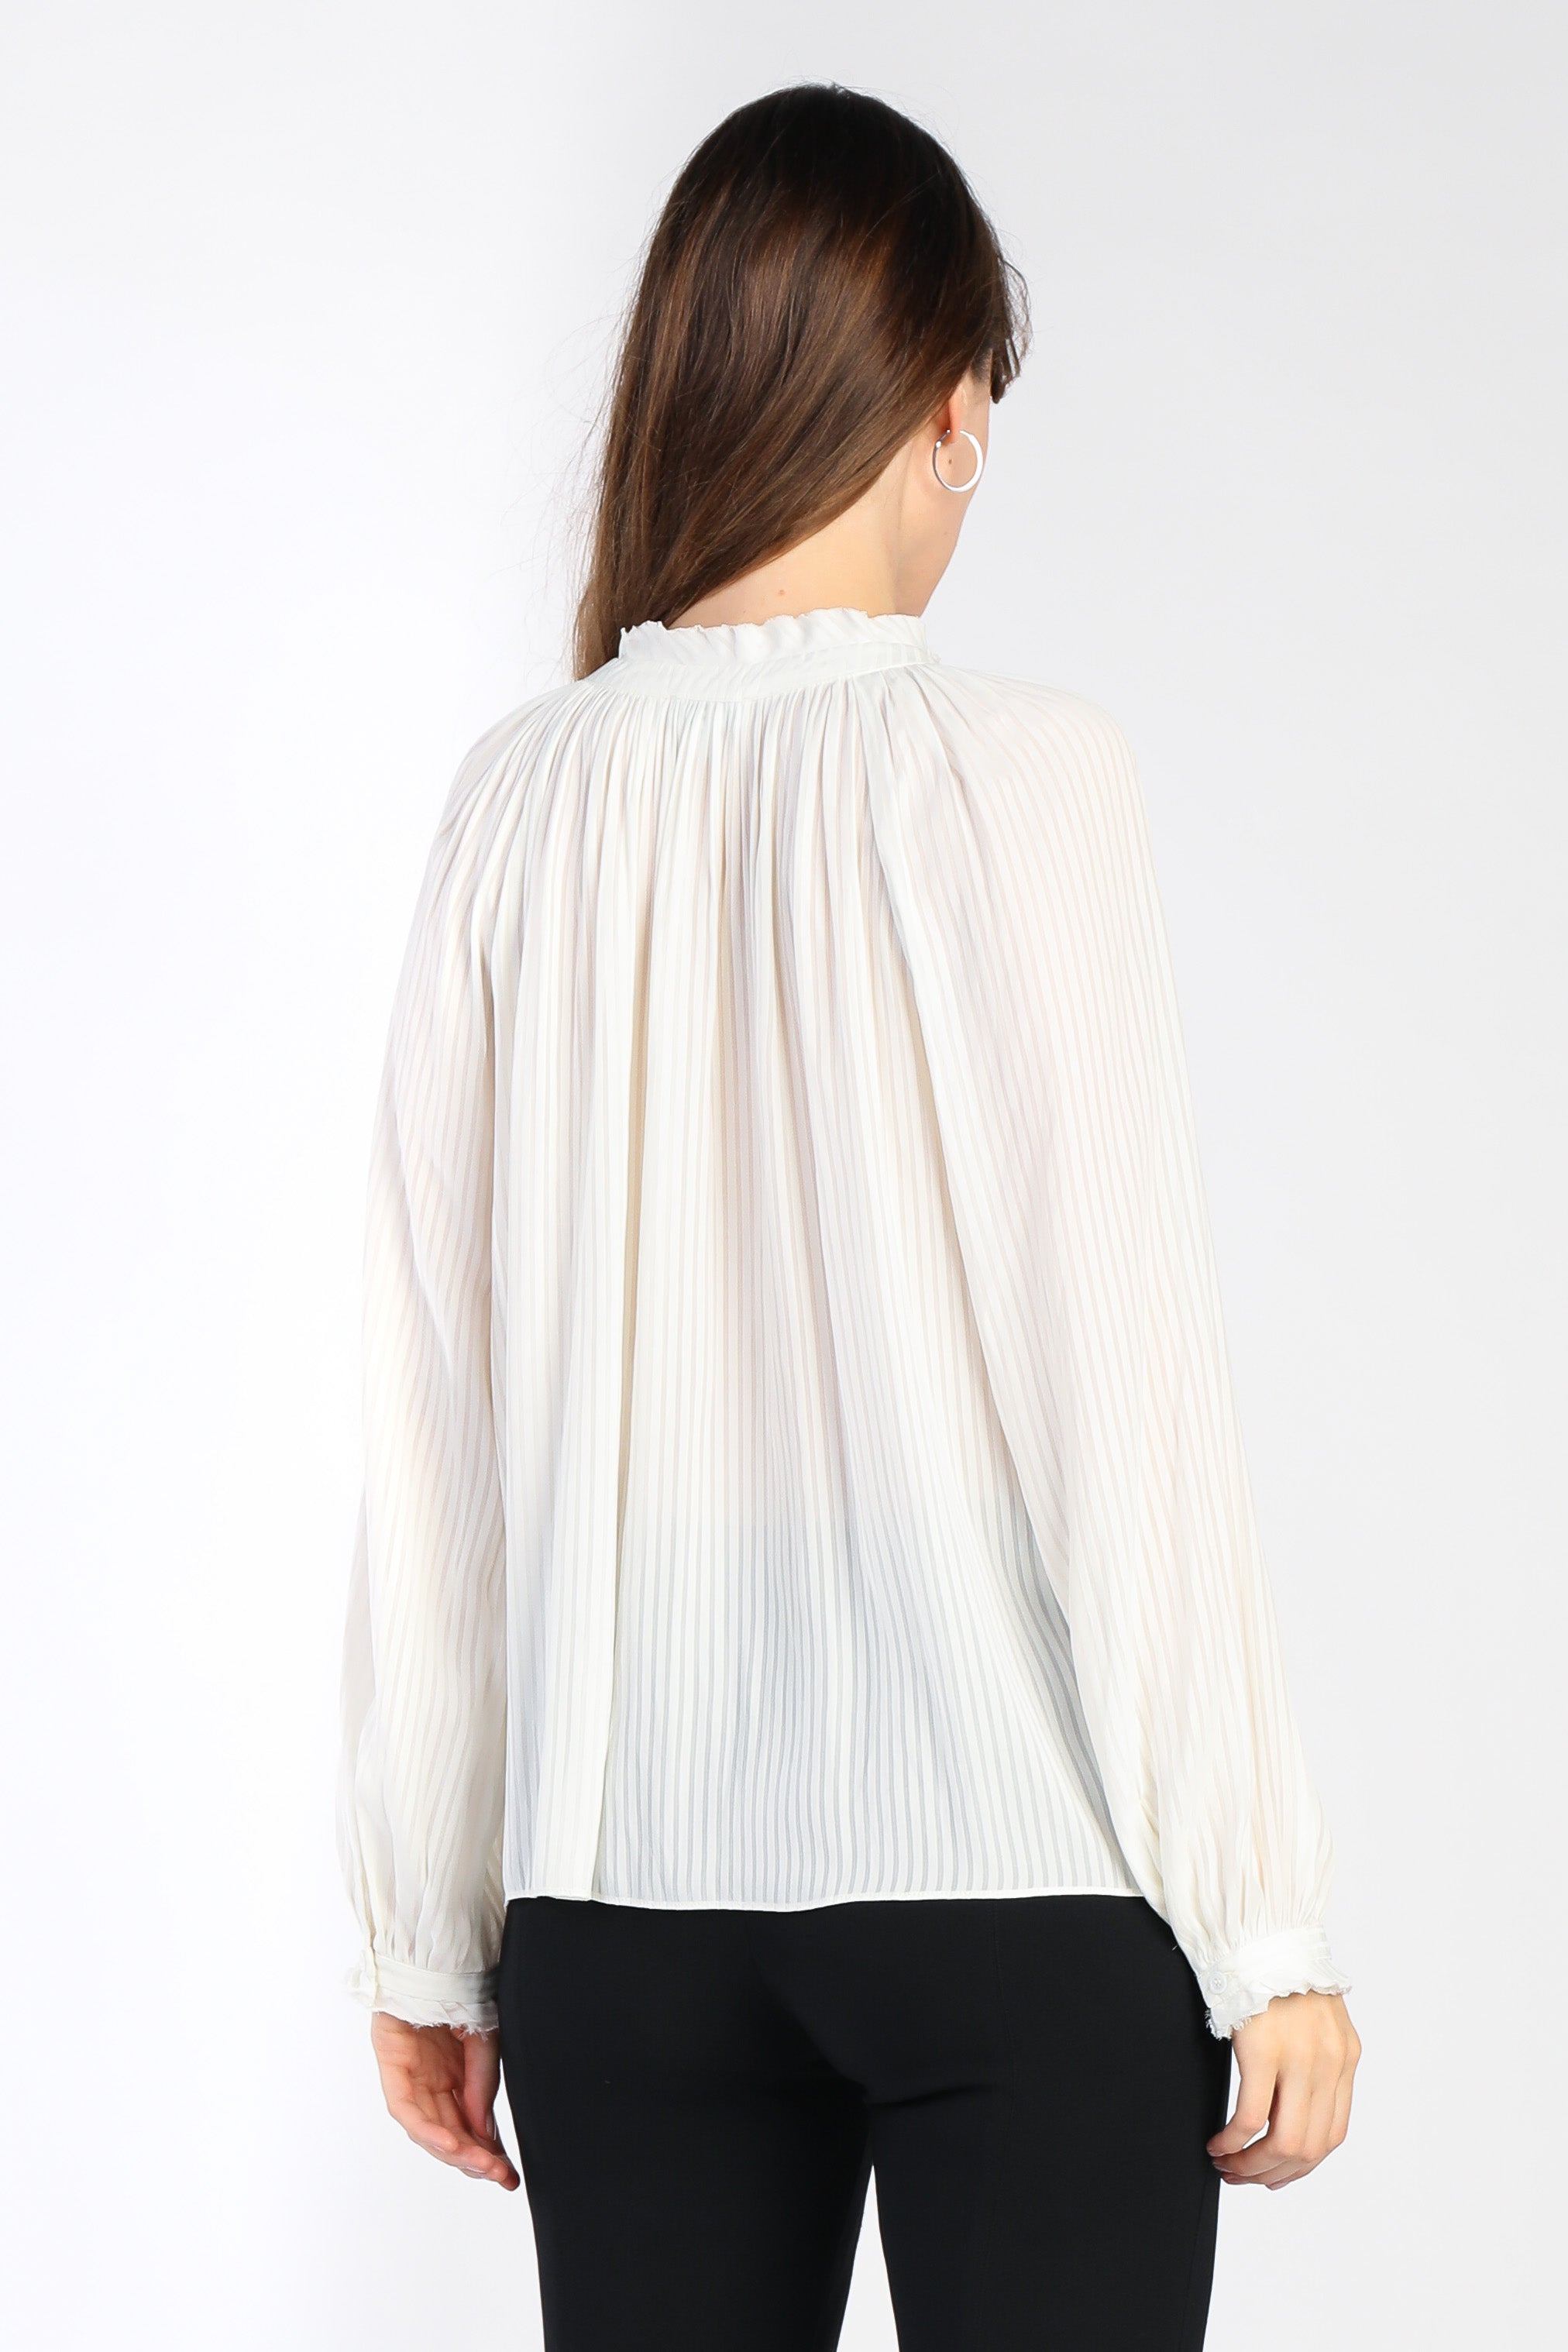 Long Sleeve Striped Keyhole Blouse - Jacqueline B Clothing